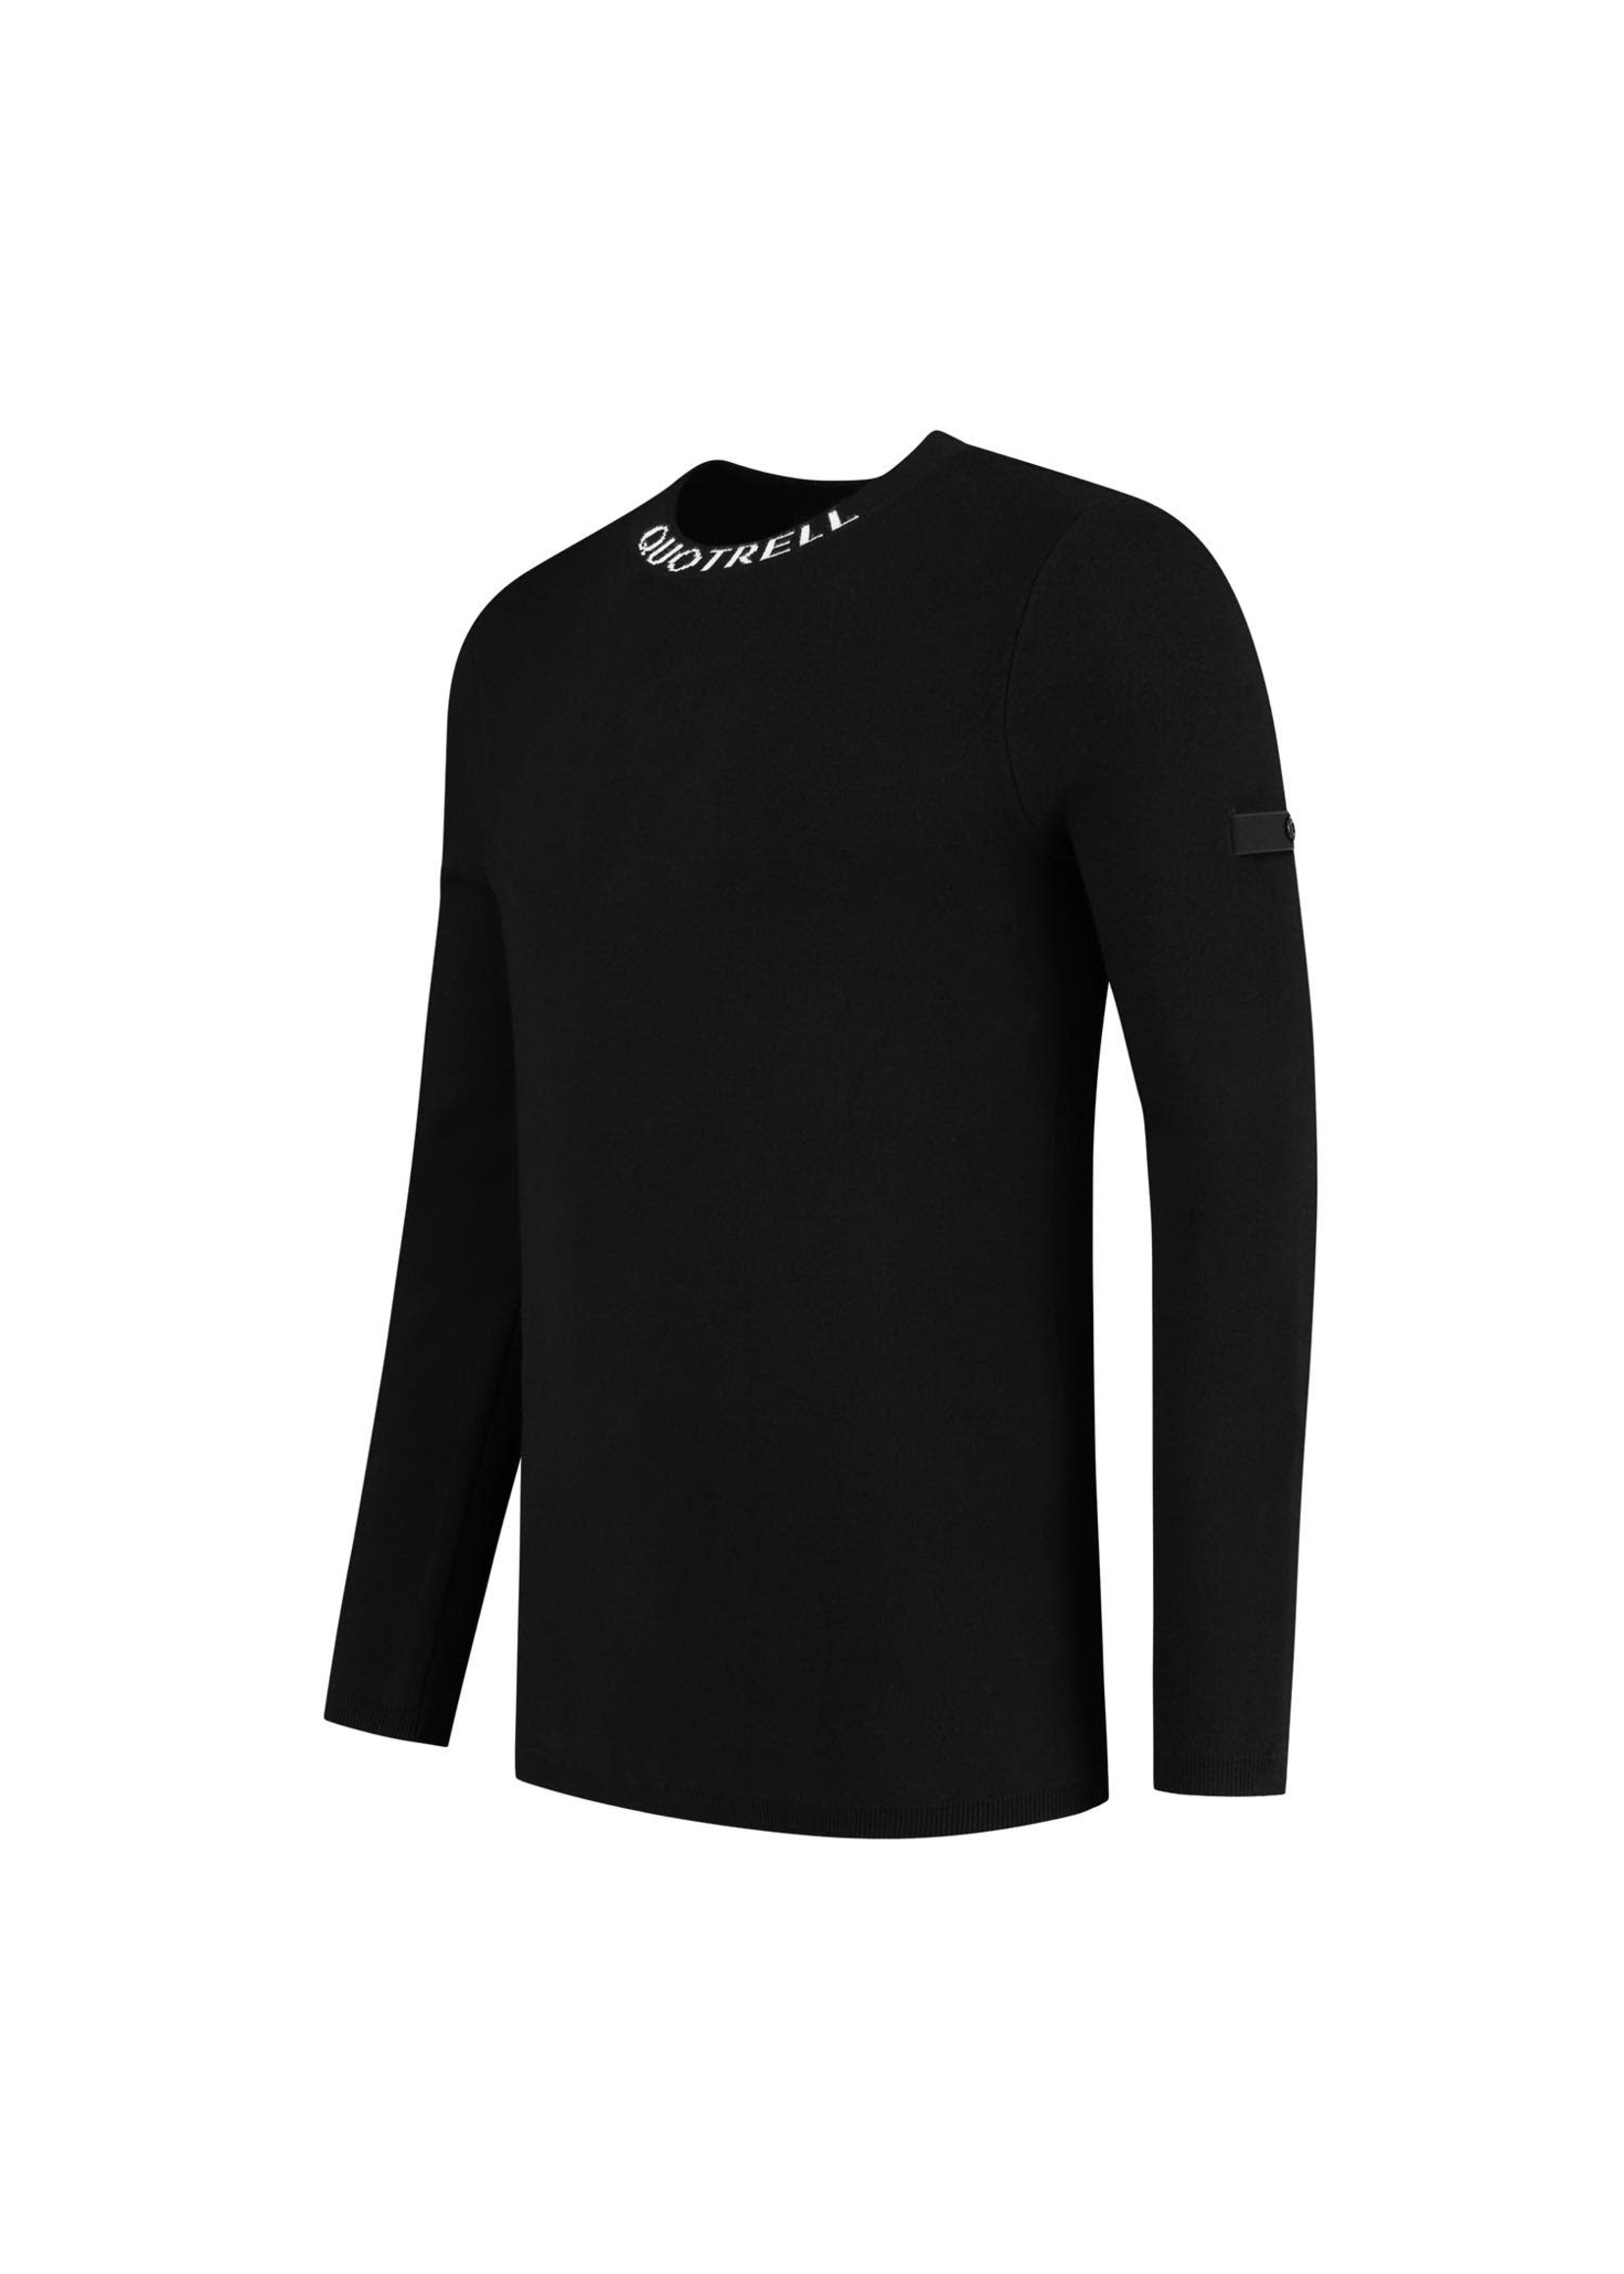 Quotrell QUOTRELL London Sweater - Black